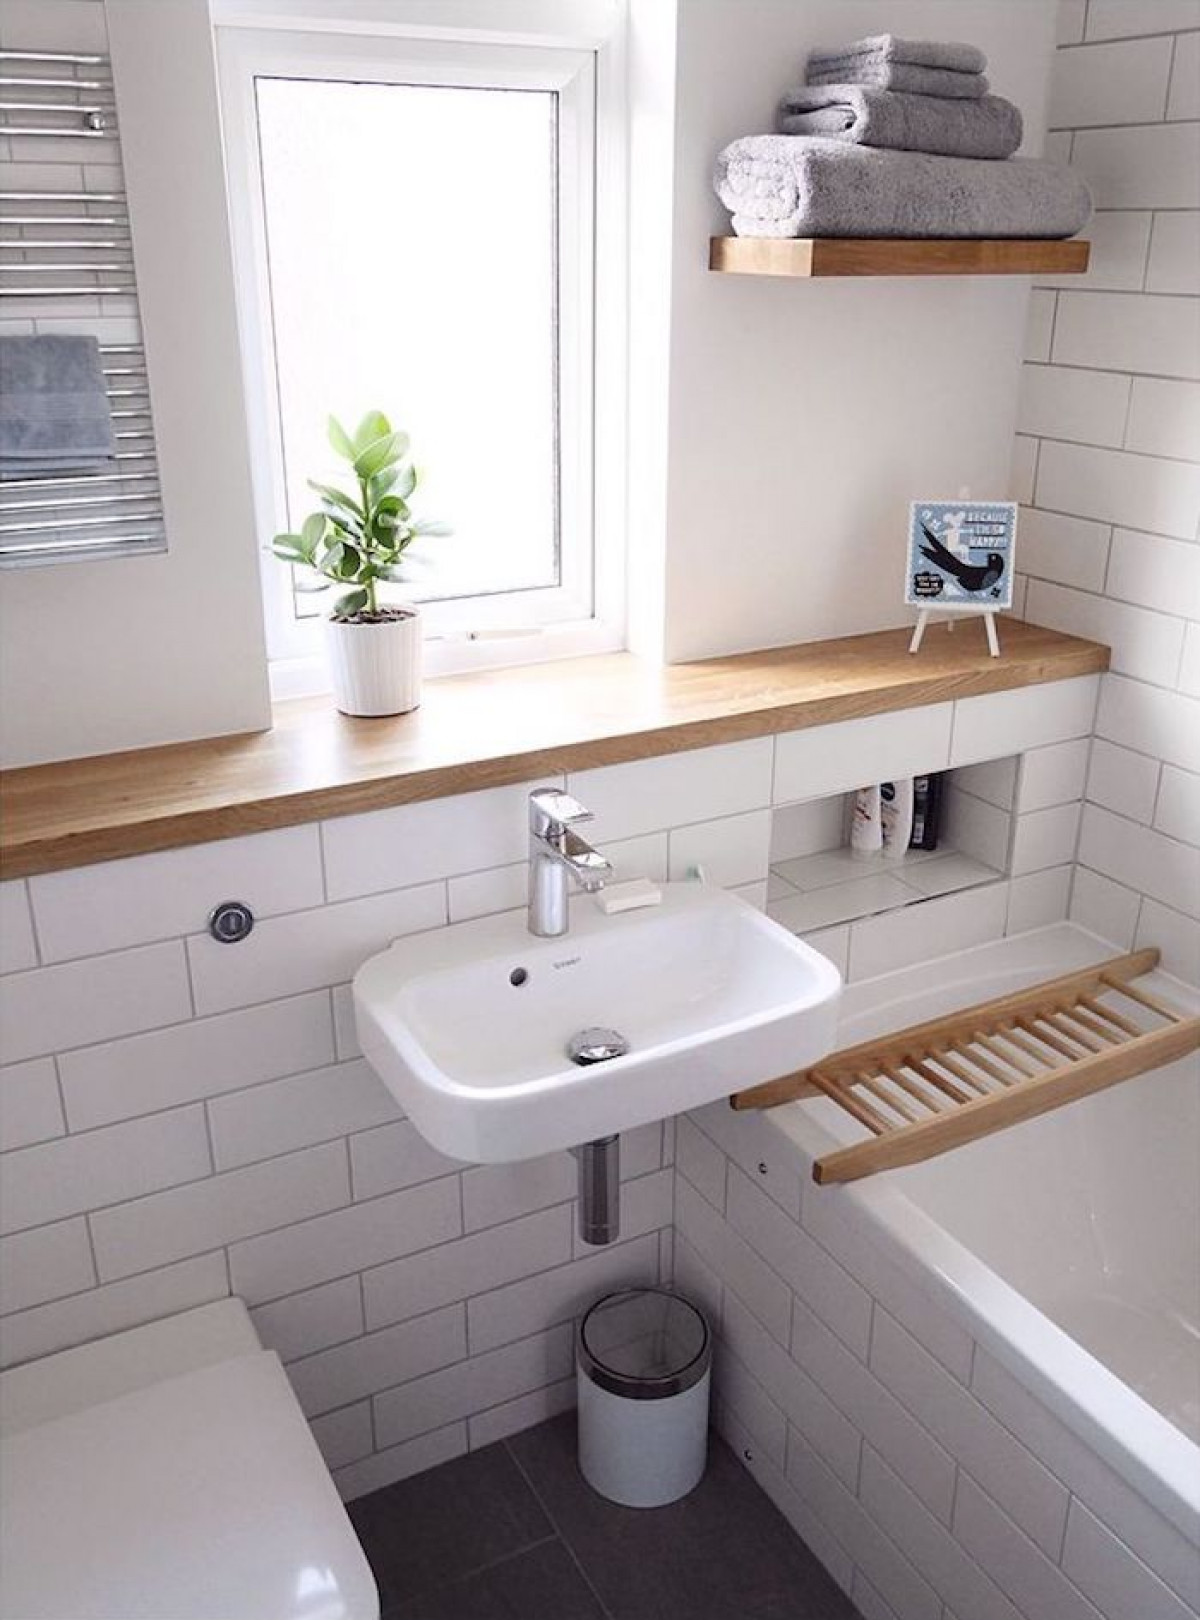 19 Small Bathroom Ideas & Images to Inspire You  British Ceramic Tile